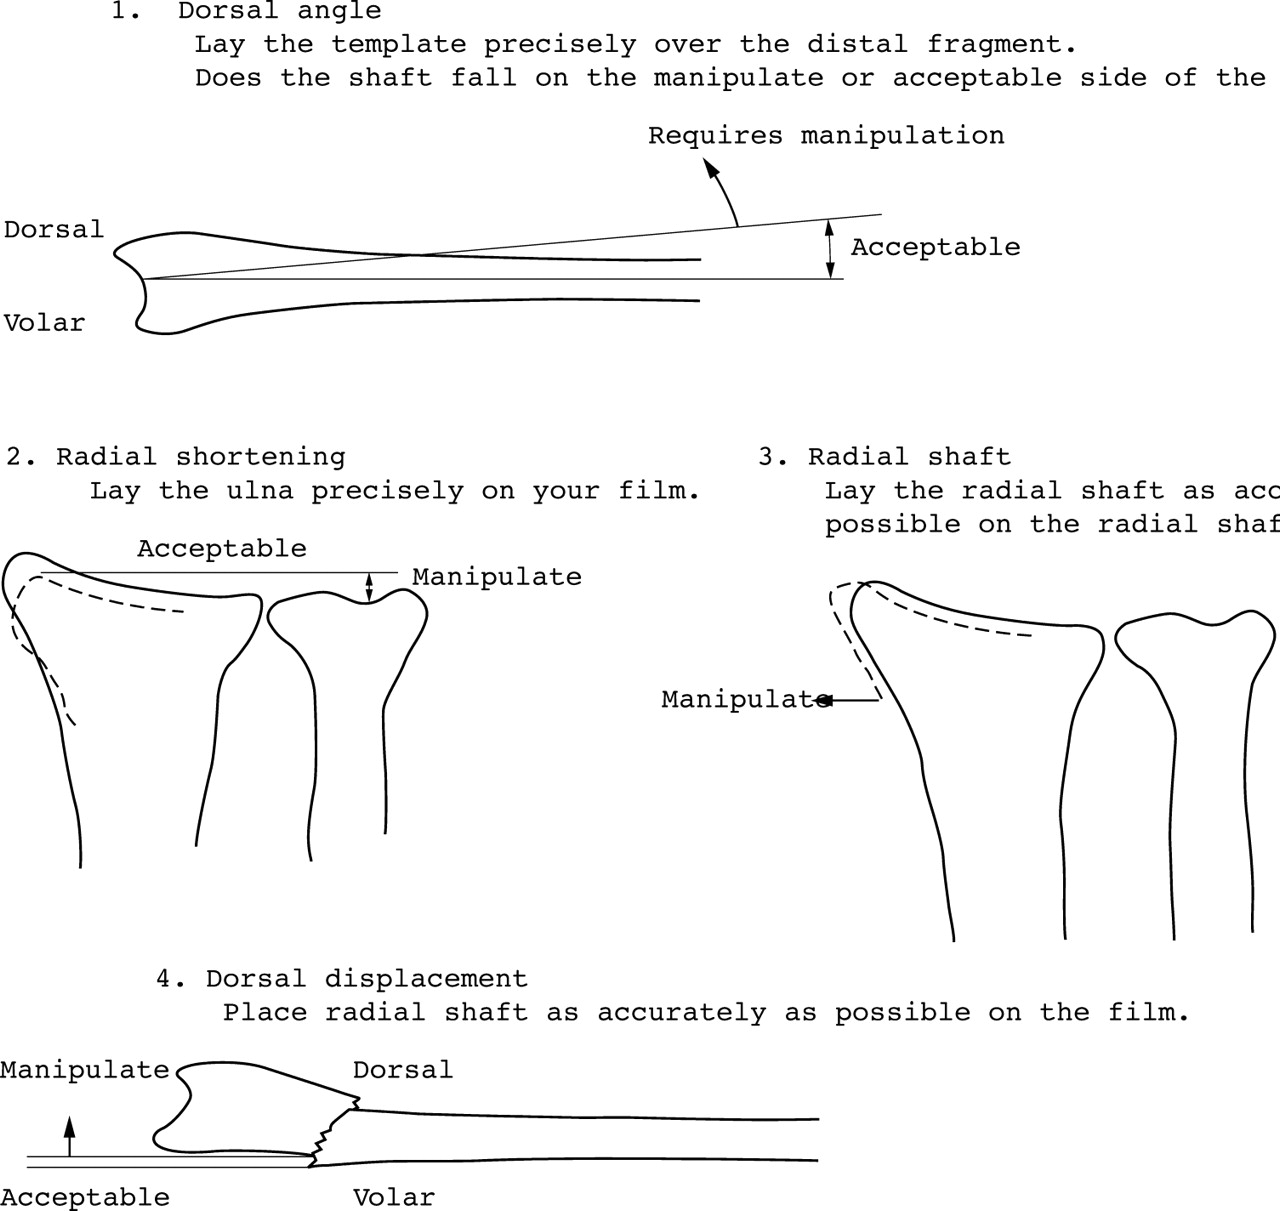 The Use Of A Template To Improve Management Distal Radial Block Diagram Manipulation Download Figure